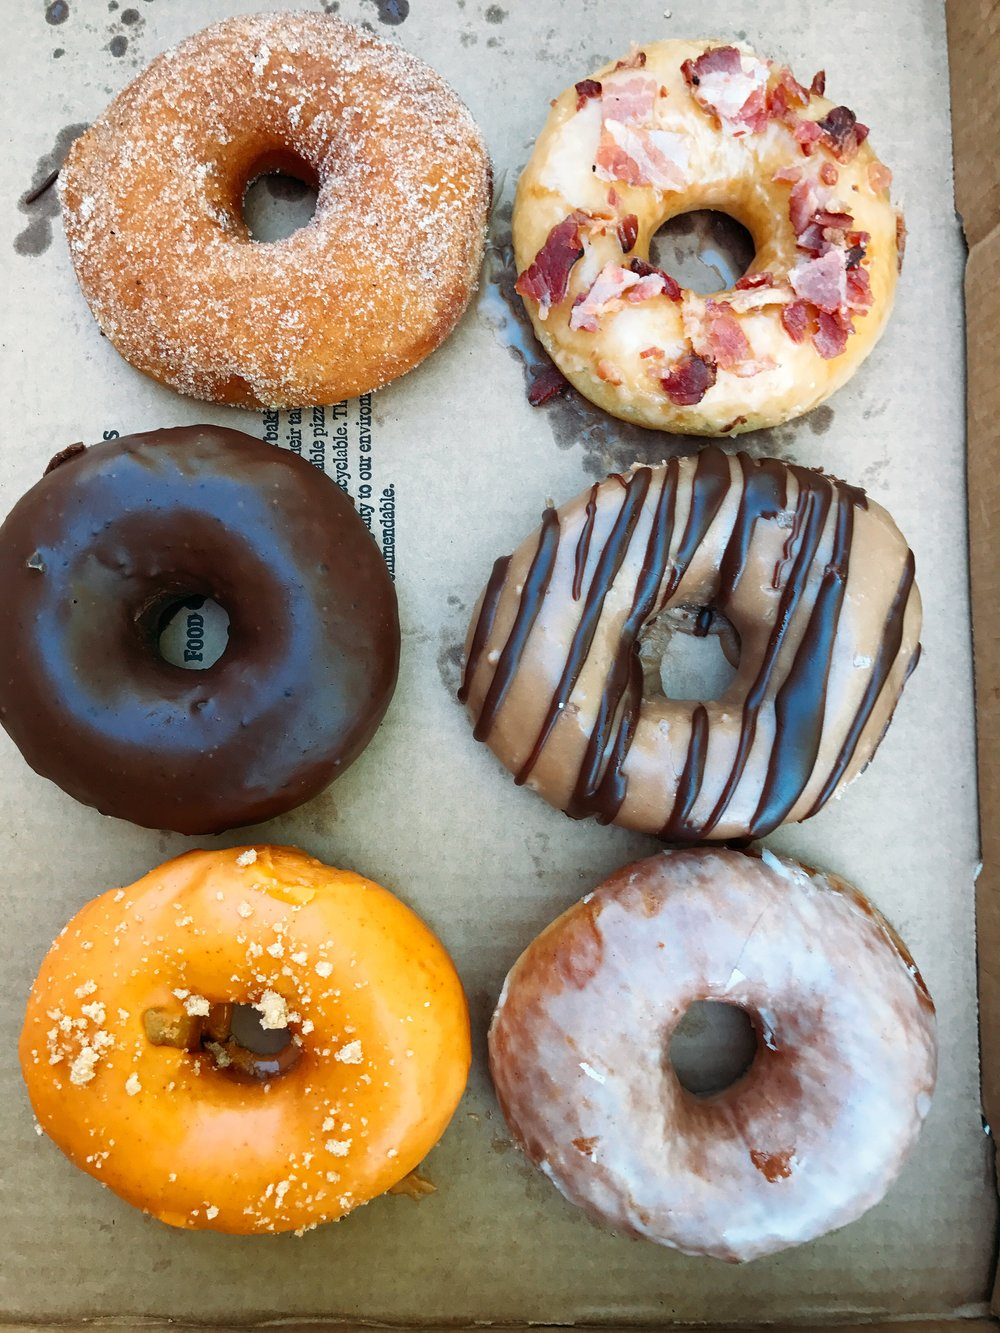 (Left to Right) Cinnamon and Sugar, Maple Bacon, Chocolate Glaze, Chocolate Sea Salt Caramel, Spicy Carrot and Vanilla Glaze